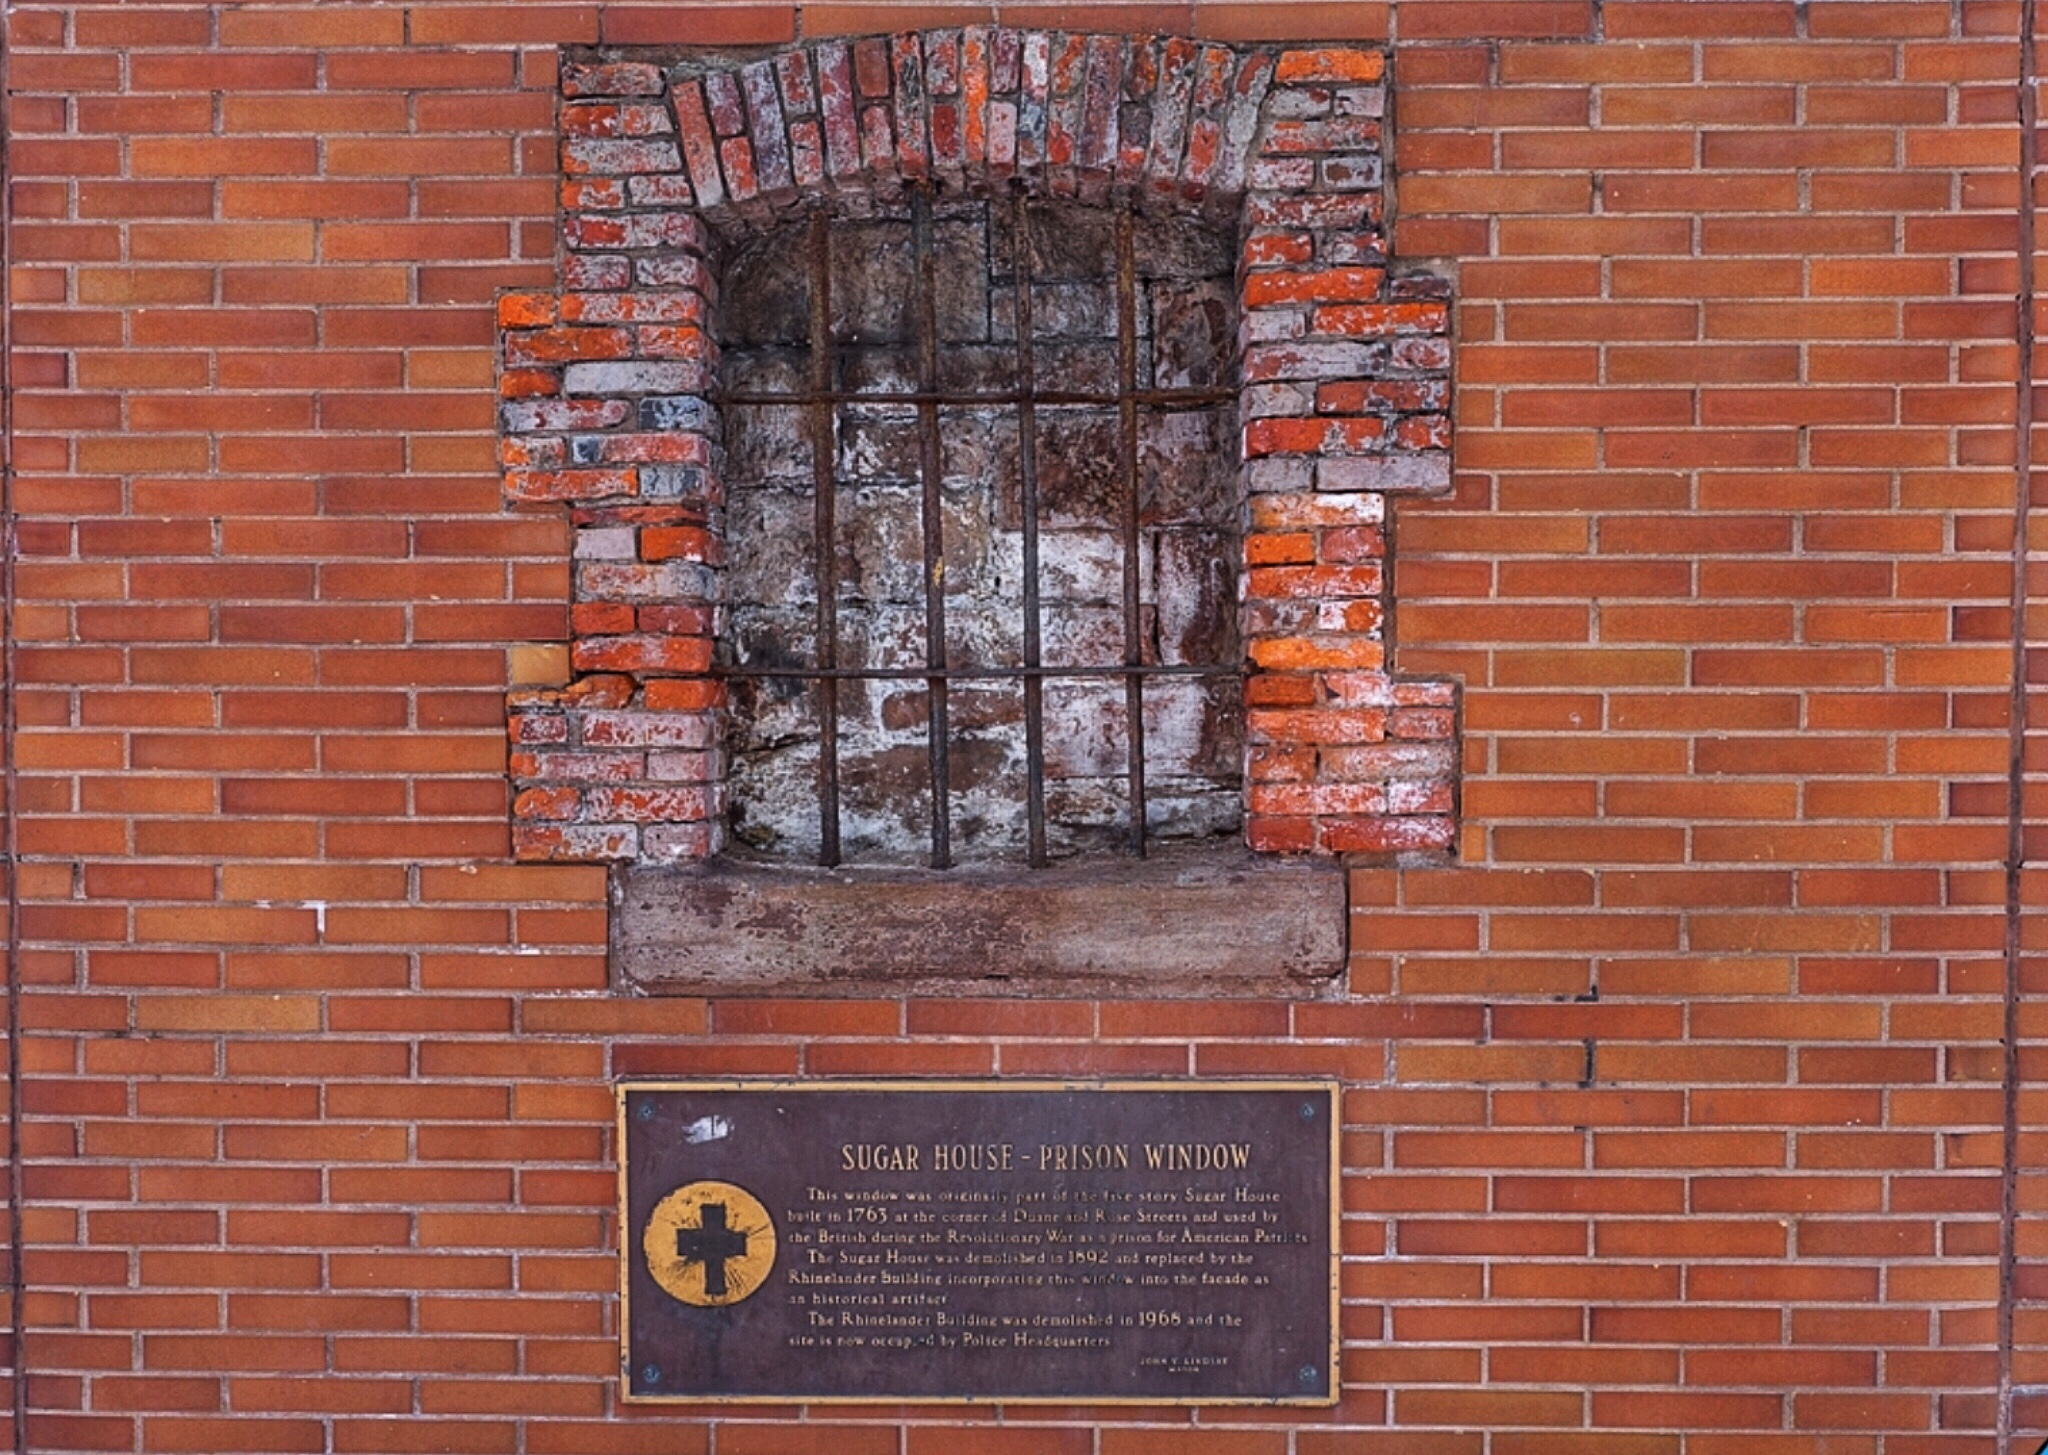 A revolutionary war Sugar House prison window in downtown Manhattan